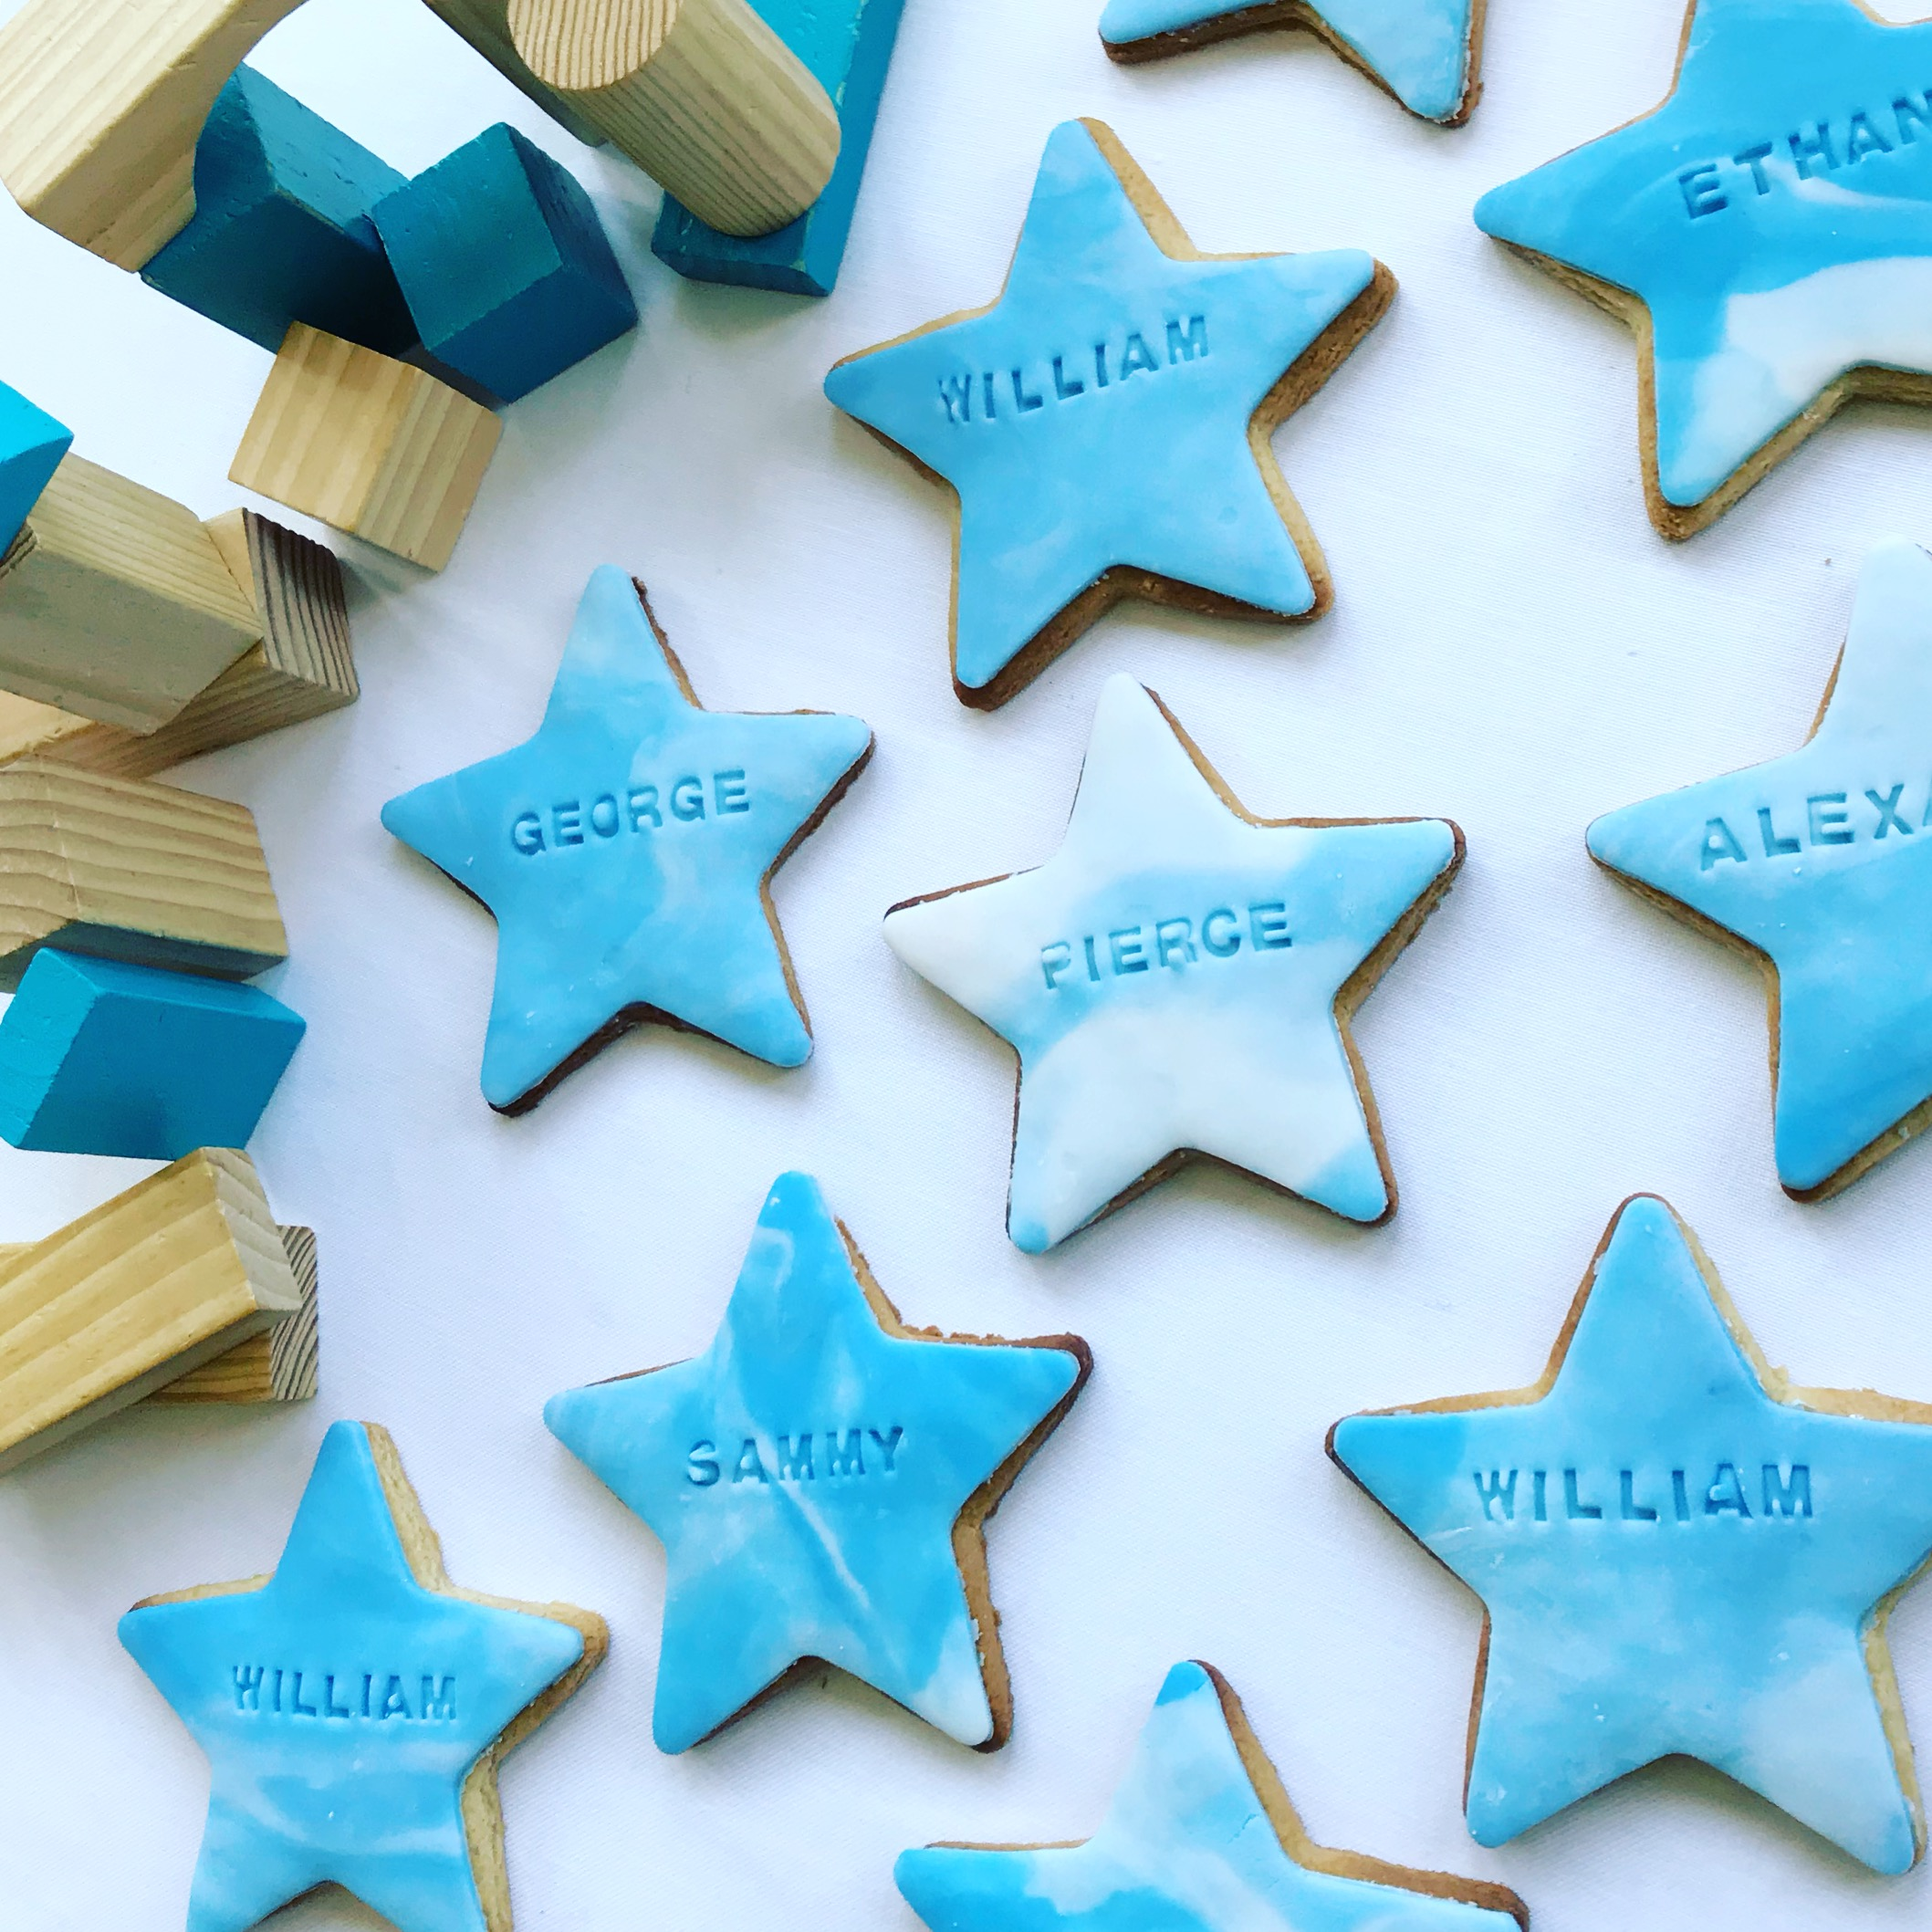 Personalised party favours